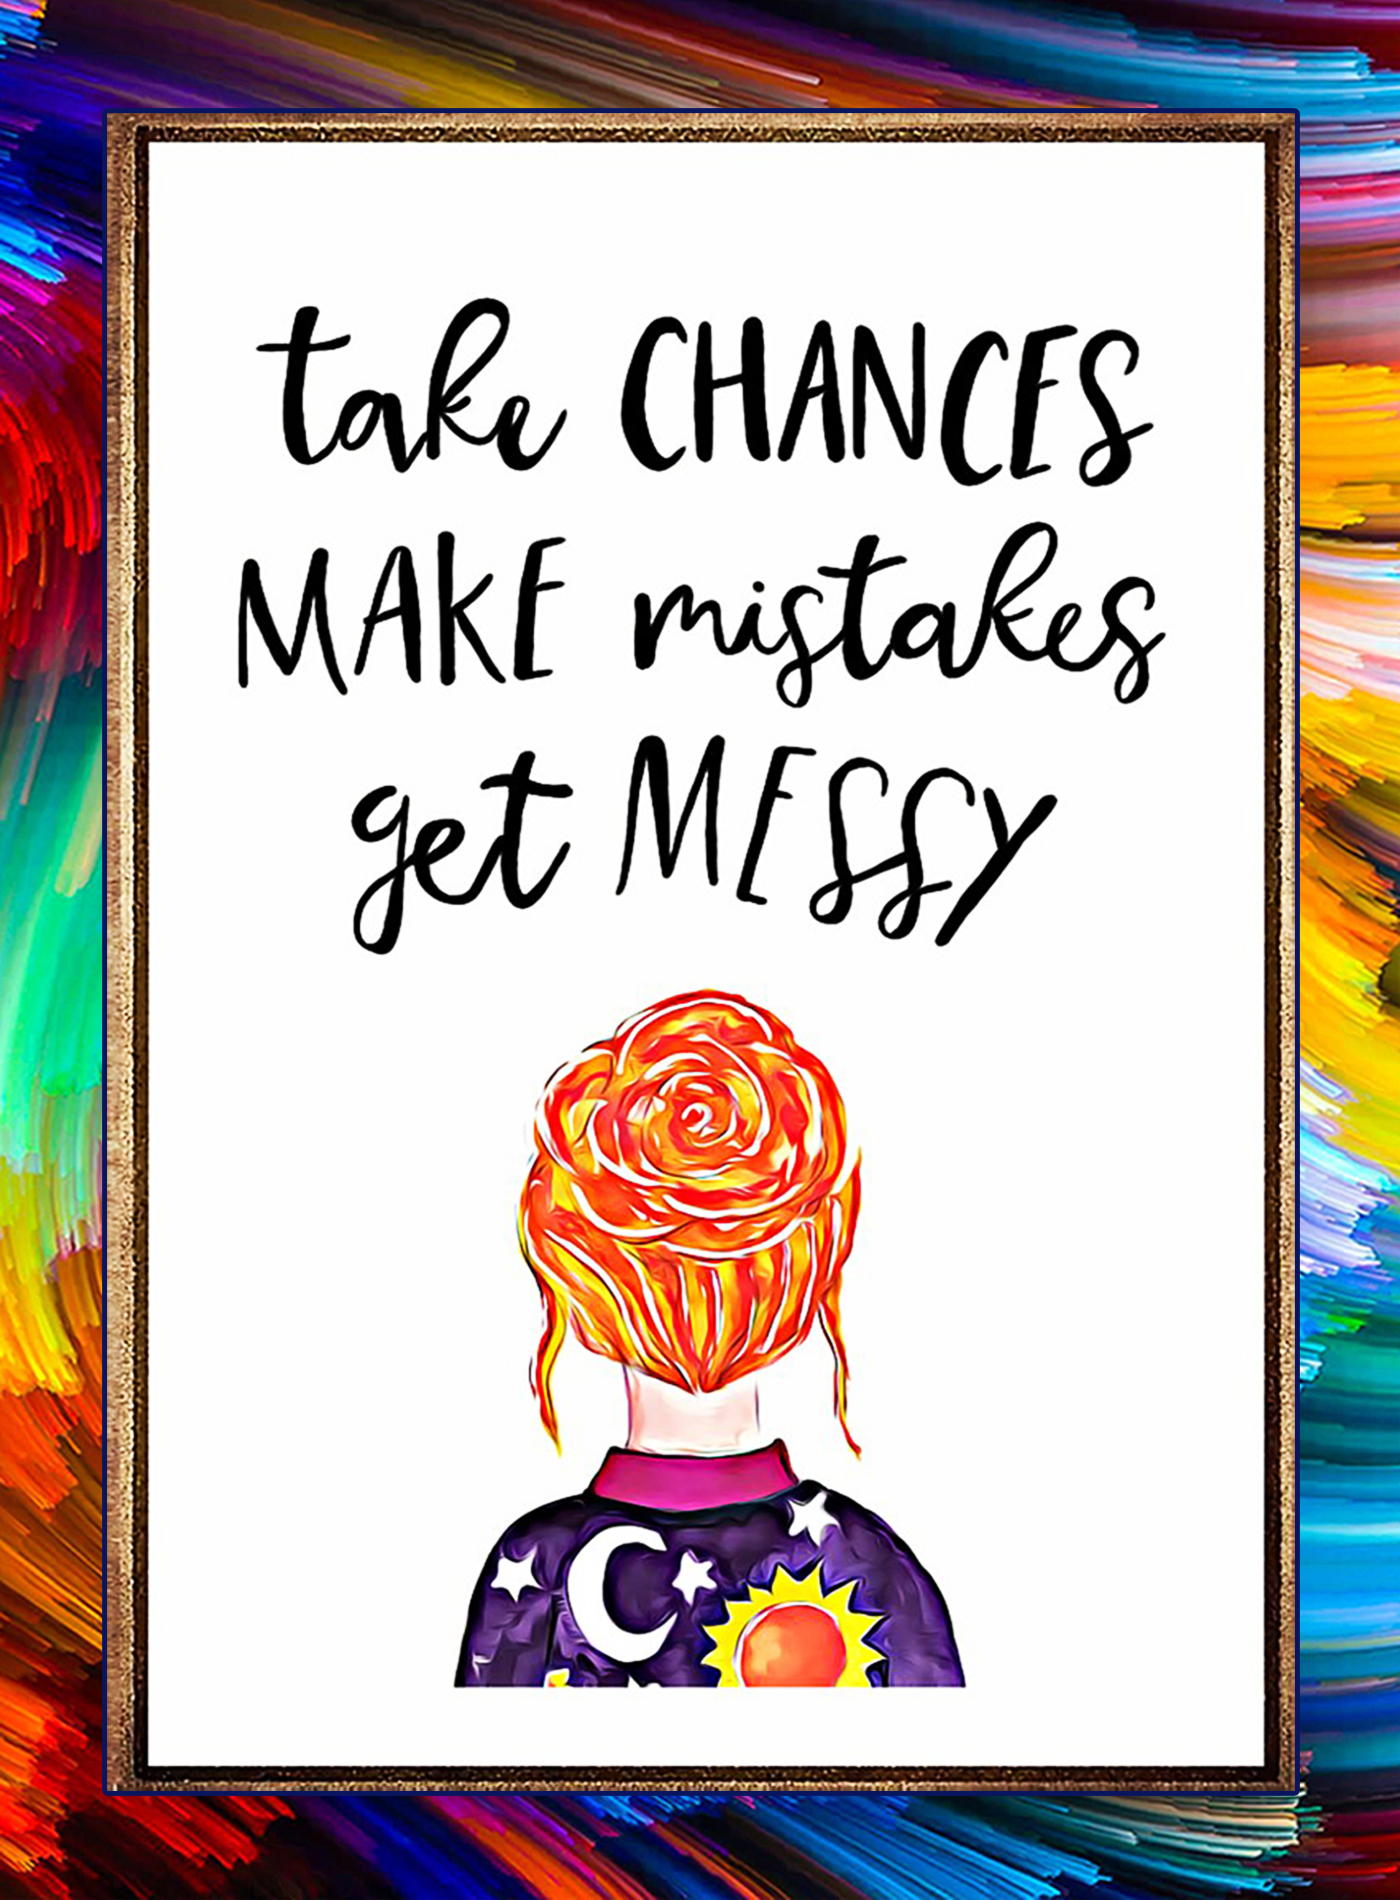 Take chances make mistakes get messy poster - A1